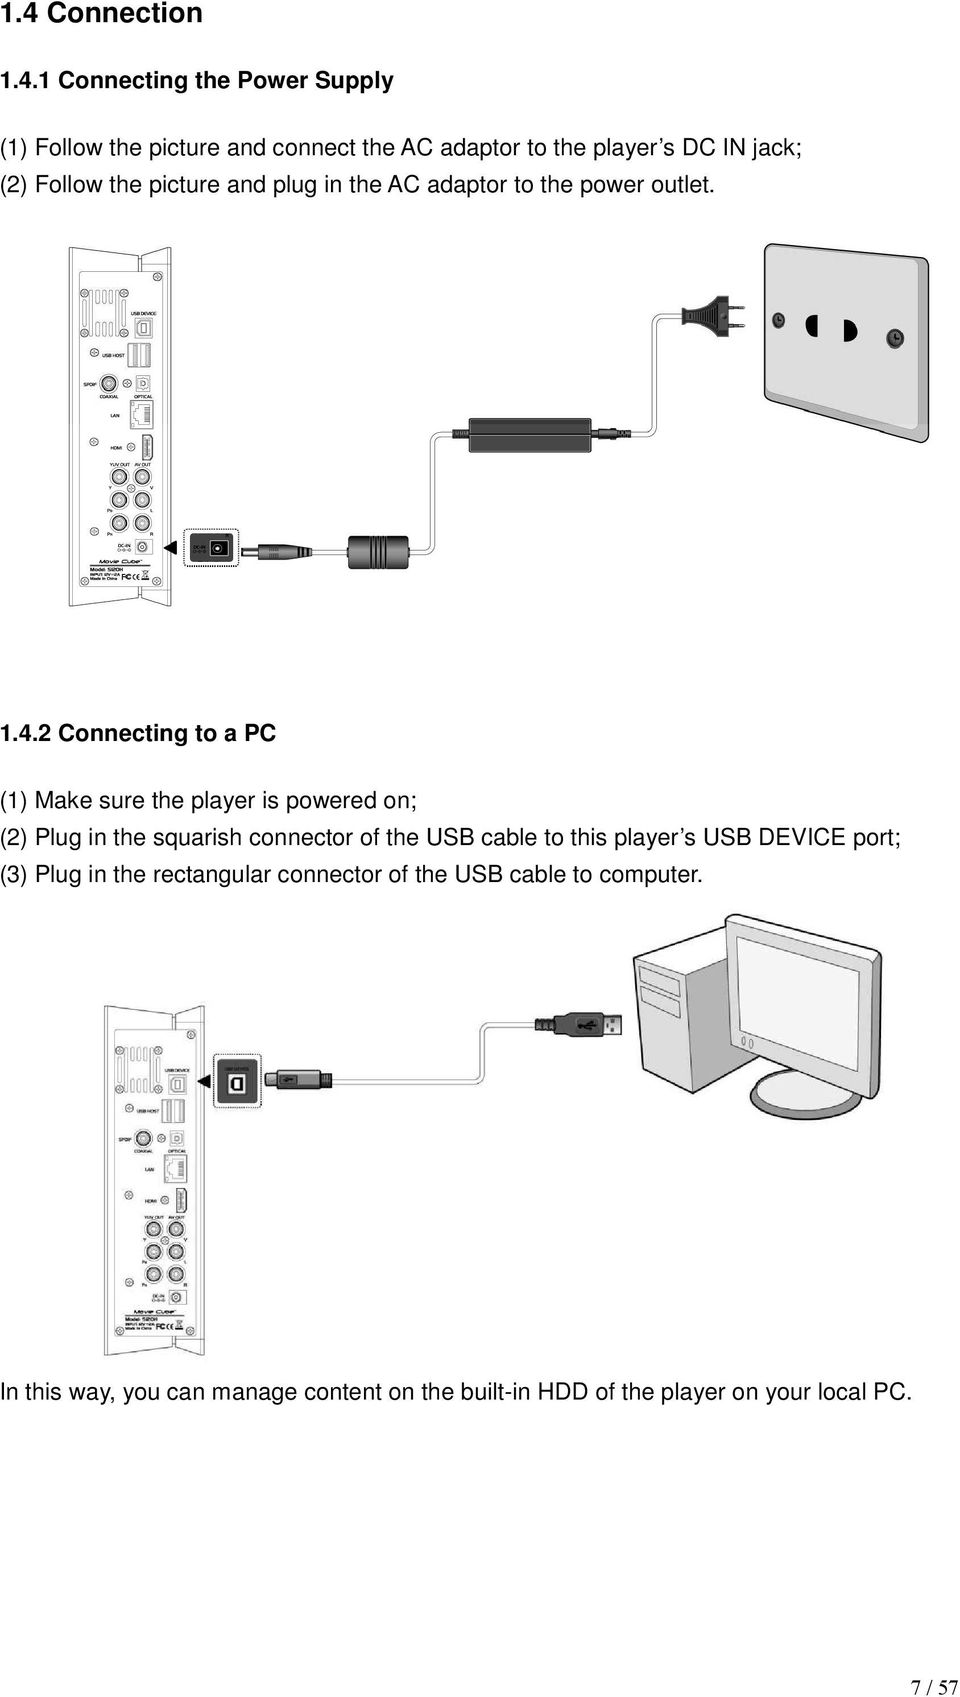 2 Connecting to a PC (1) Make sure the player is powered on; (2) Plug in the squarish connector of the USB cable to this player